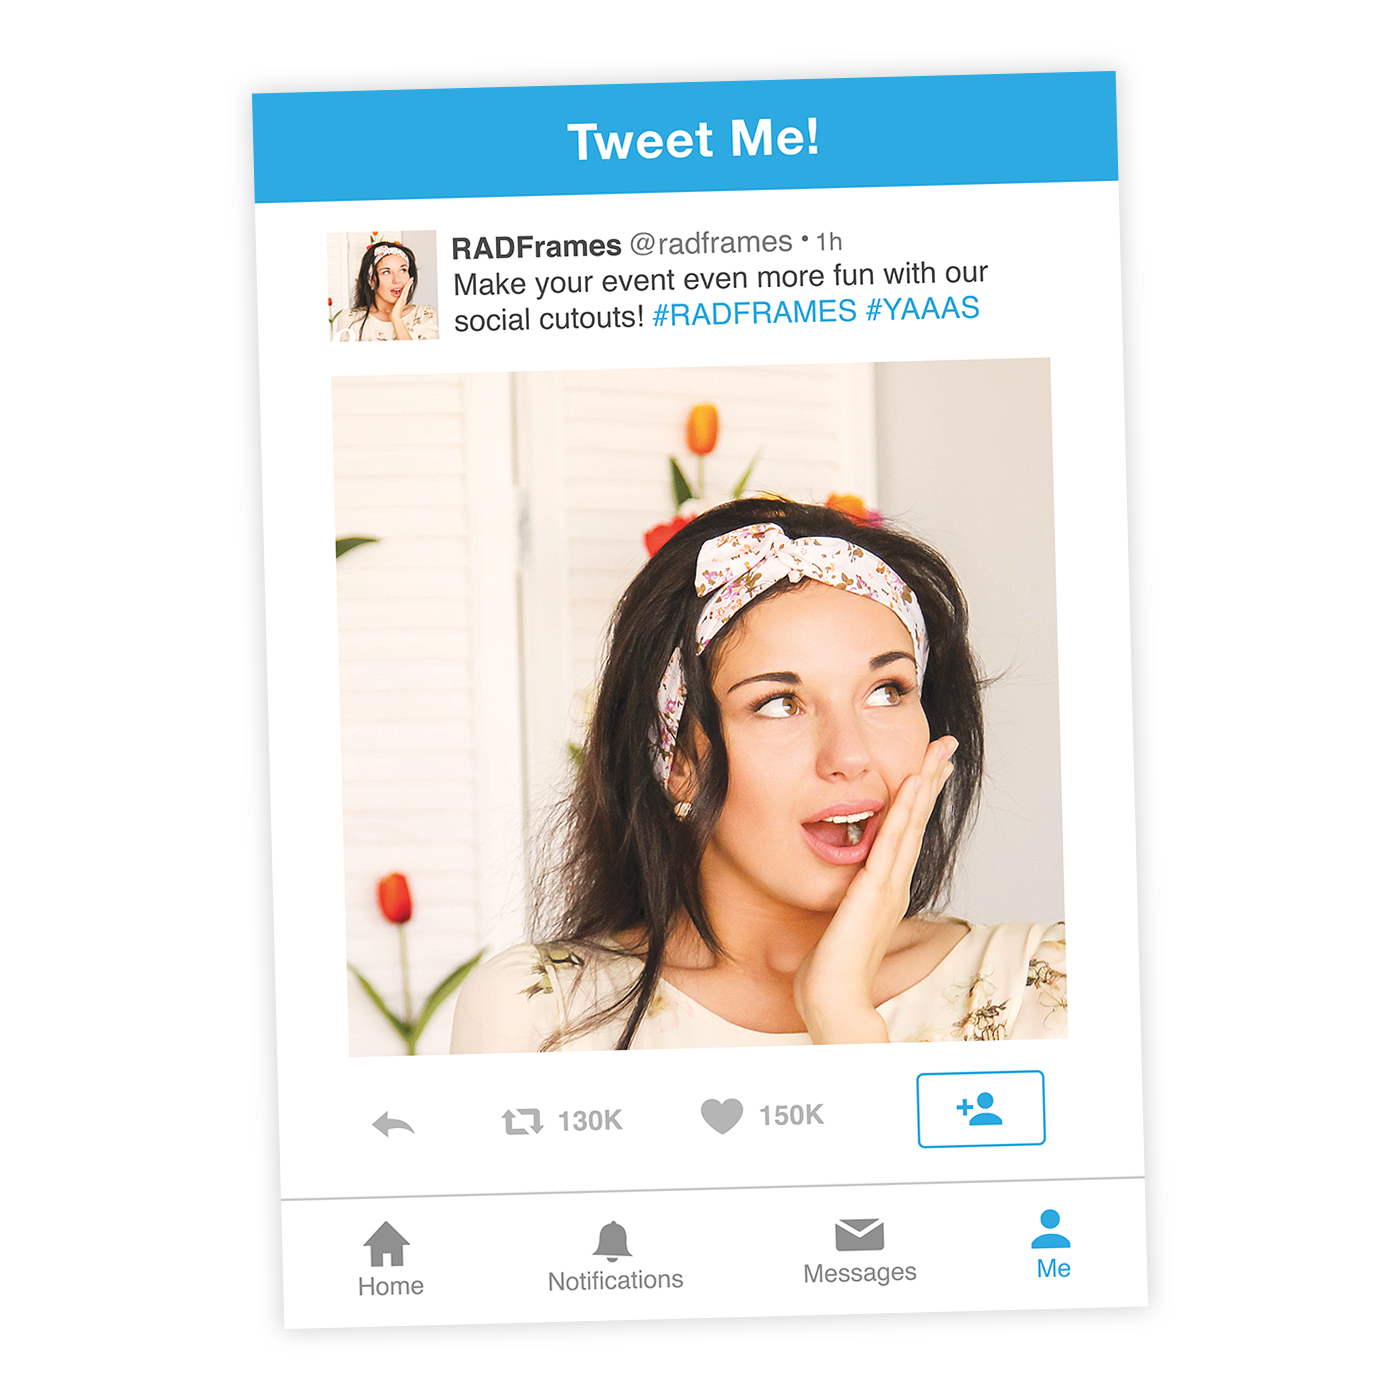 Twitter Frame Cutout + Twitter Style Photo Booth Prop - FABSelfie